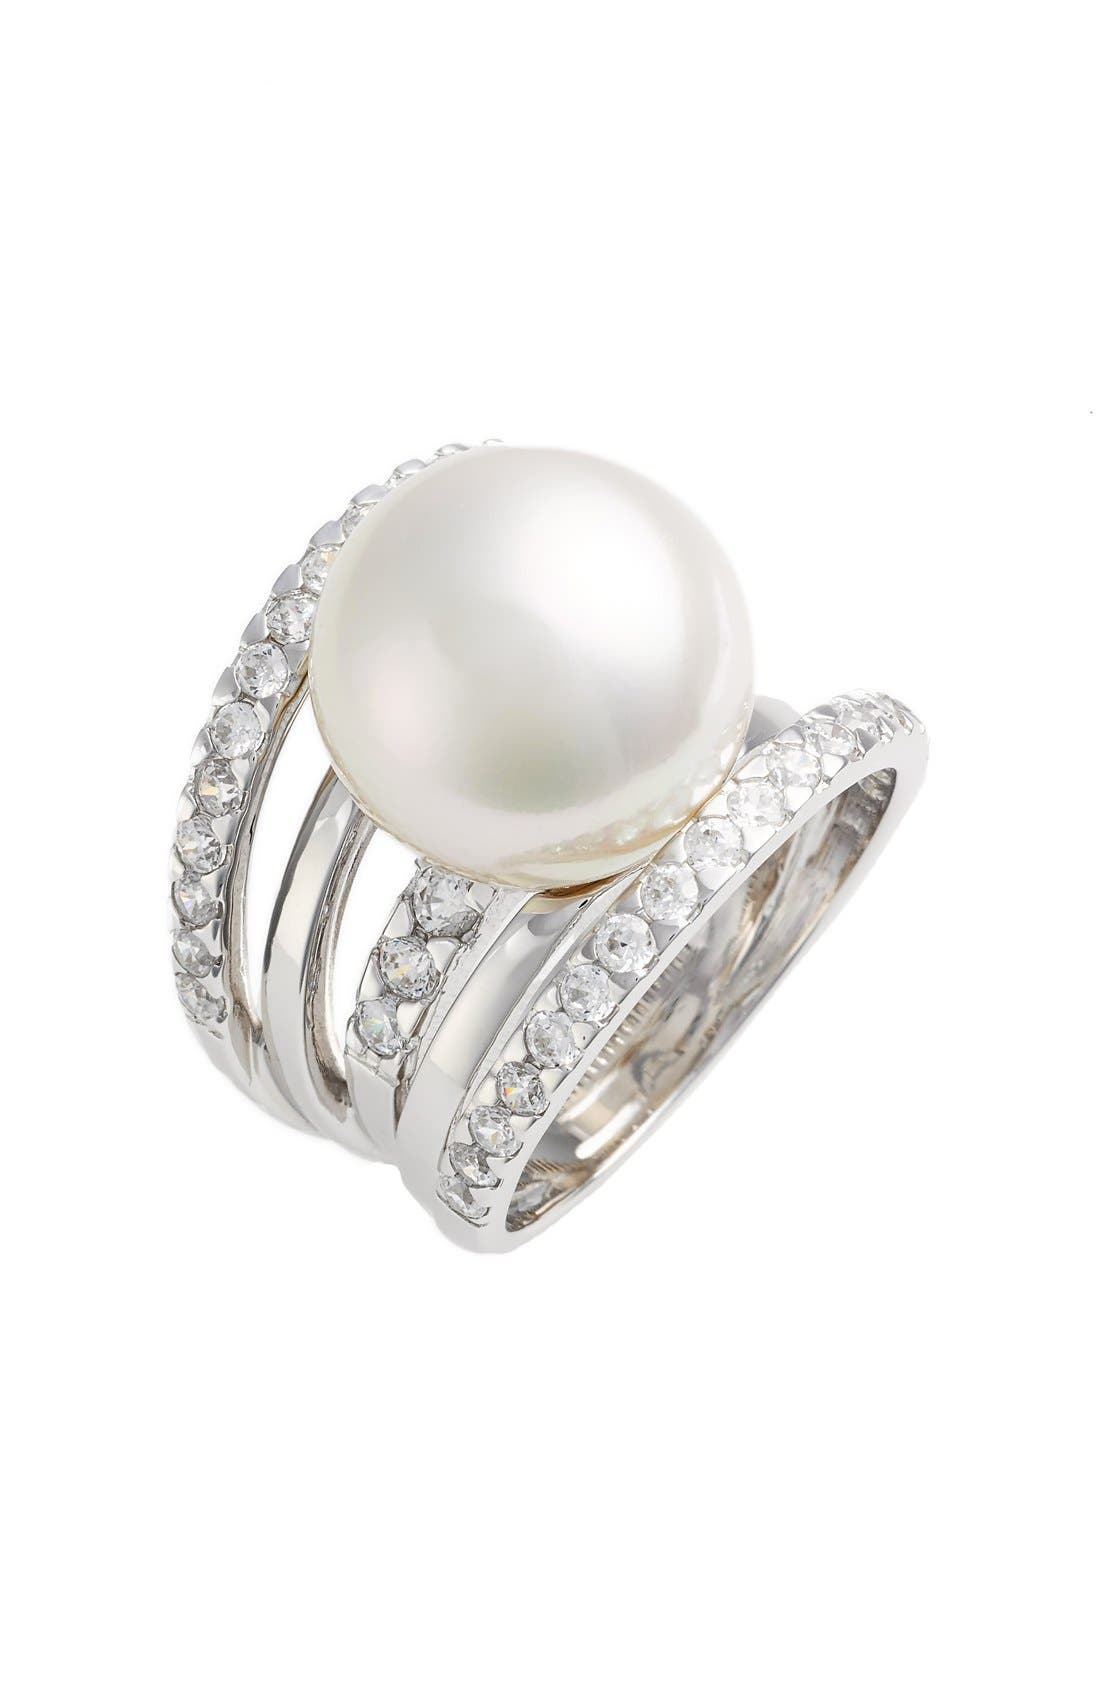 16mm Round Simulated Pearl Cubic Zirconia Ring,                         Main,                         color,